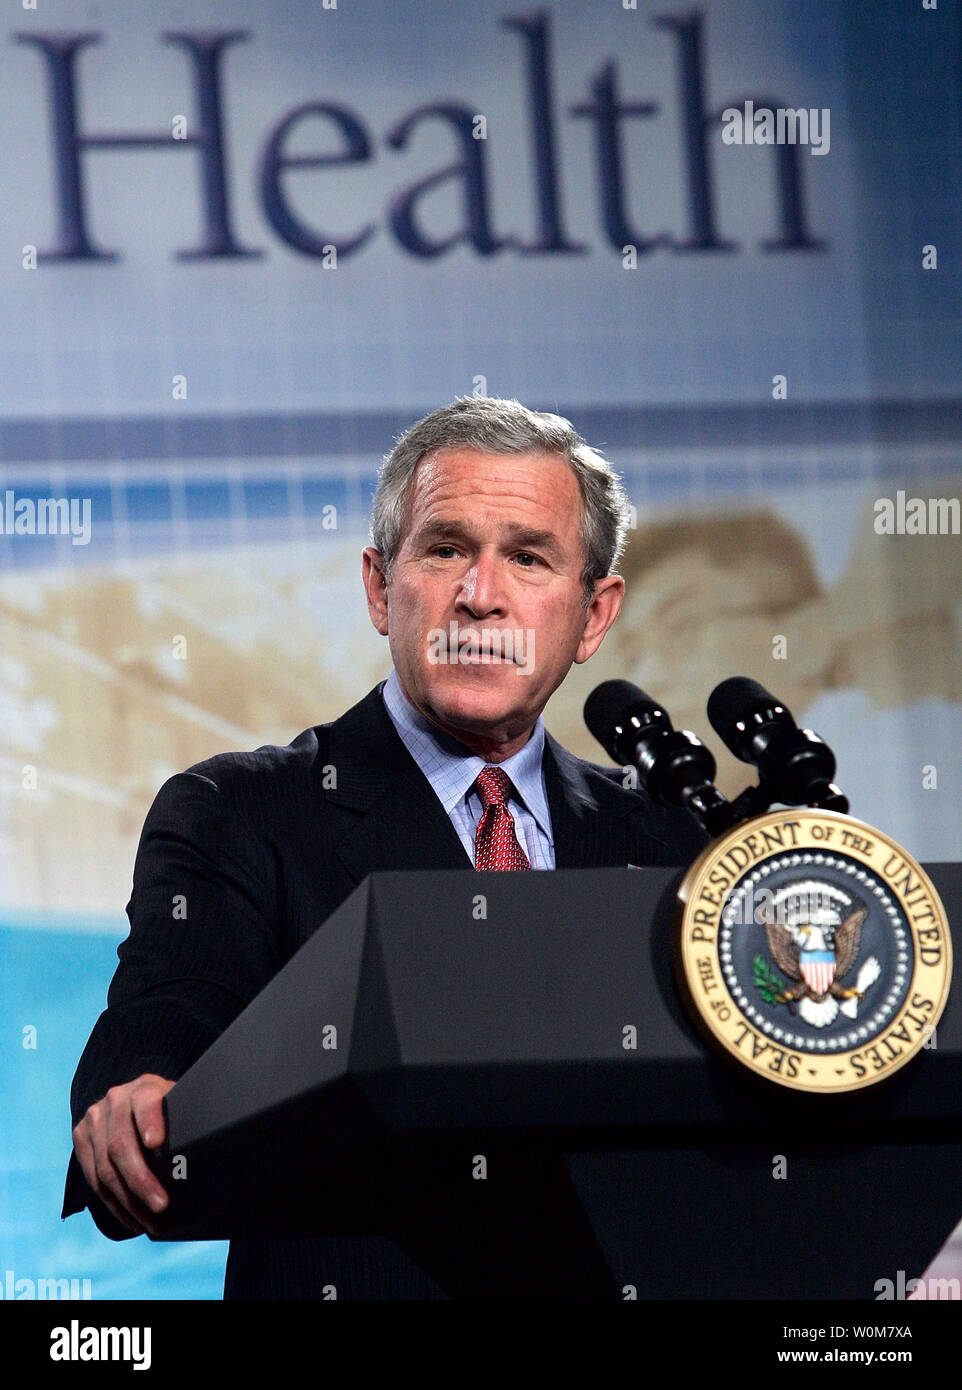 President George W. Bush speaks about the administration's national strategy for pandemic influenza preparedness and response at William Natcher Center of the National Institutes of Health November 1, 2005 in Bethesda, Maryland. Bush called for an early warning system in case of an outbreak of a flu pandemic.  (UPI/Photo/Alex Wong/Getty Images) *** Local Caption *** George W. Bush - Stock Image